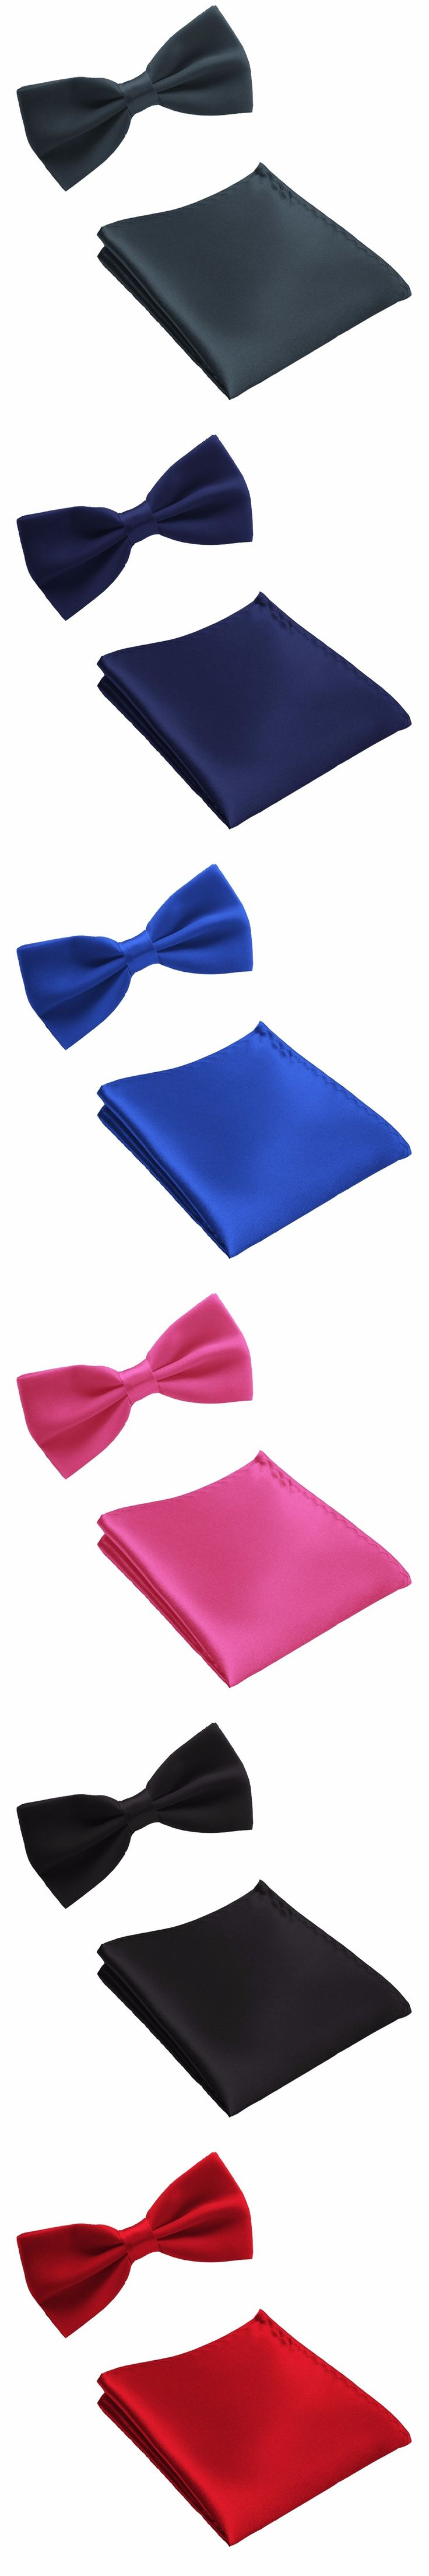 2017 Solid color Tie Set Pocket square Bow Ties for Men Handkerchief Wedding Bowtie